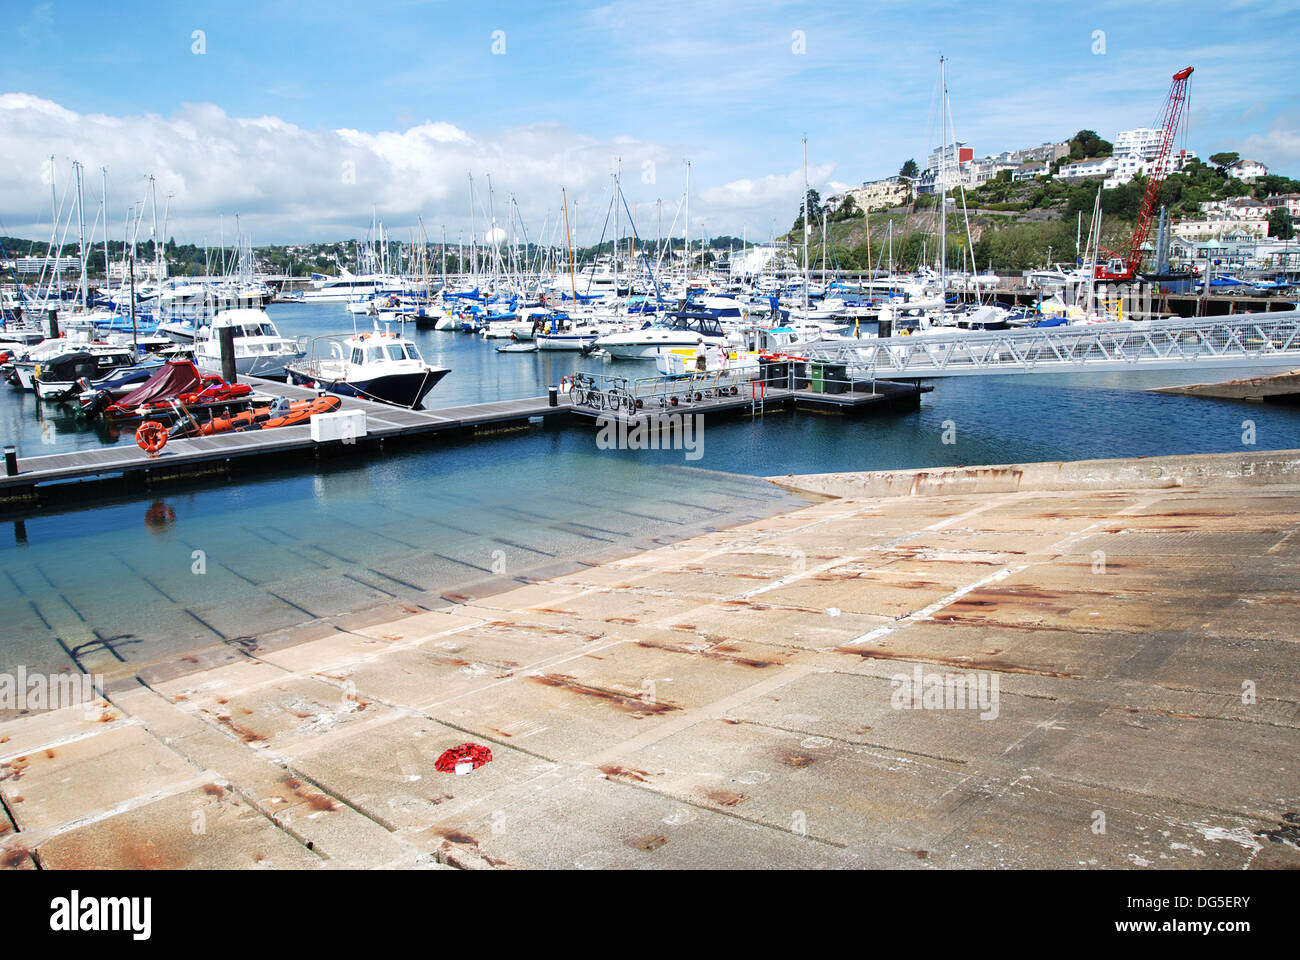 The D day embarkation ramp in the harbour at Torquay, Devon, UK - Stock Image